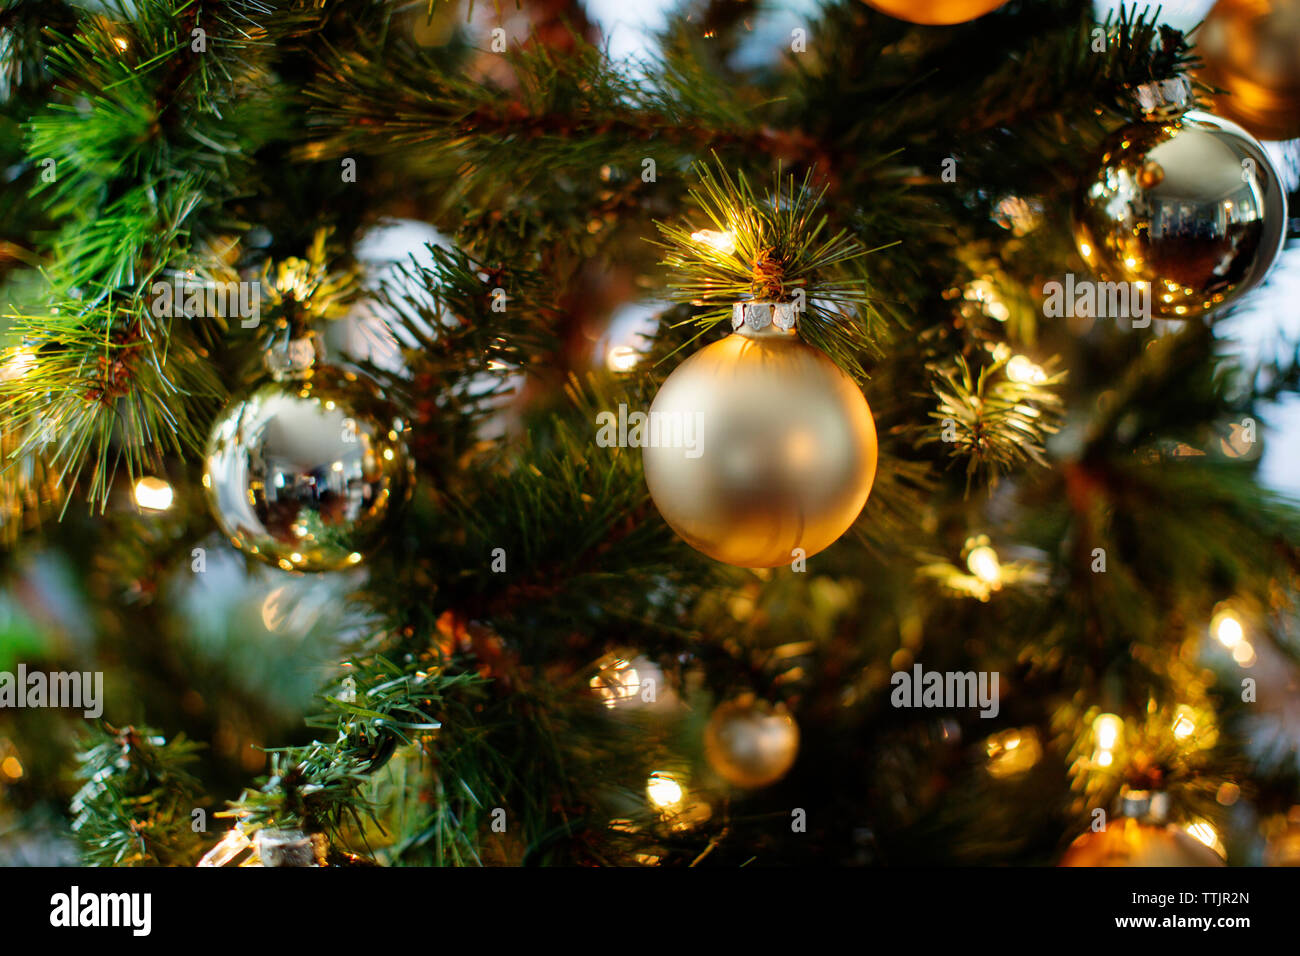 Close-up of ornaments and lights on Christmas tree Stock Photo